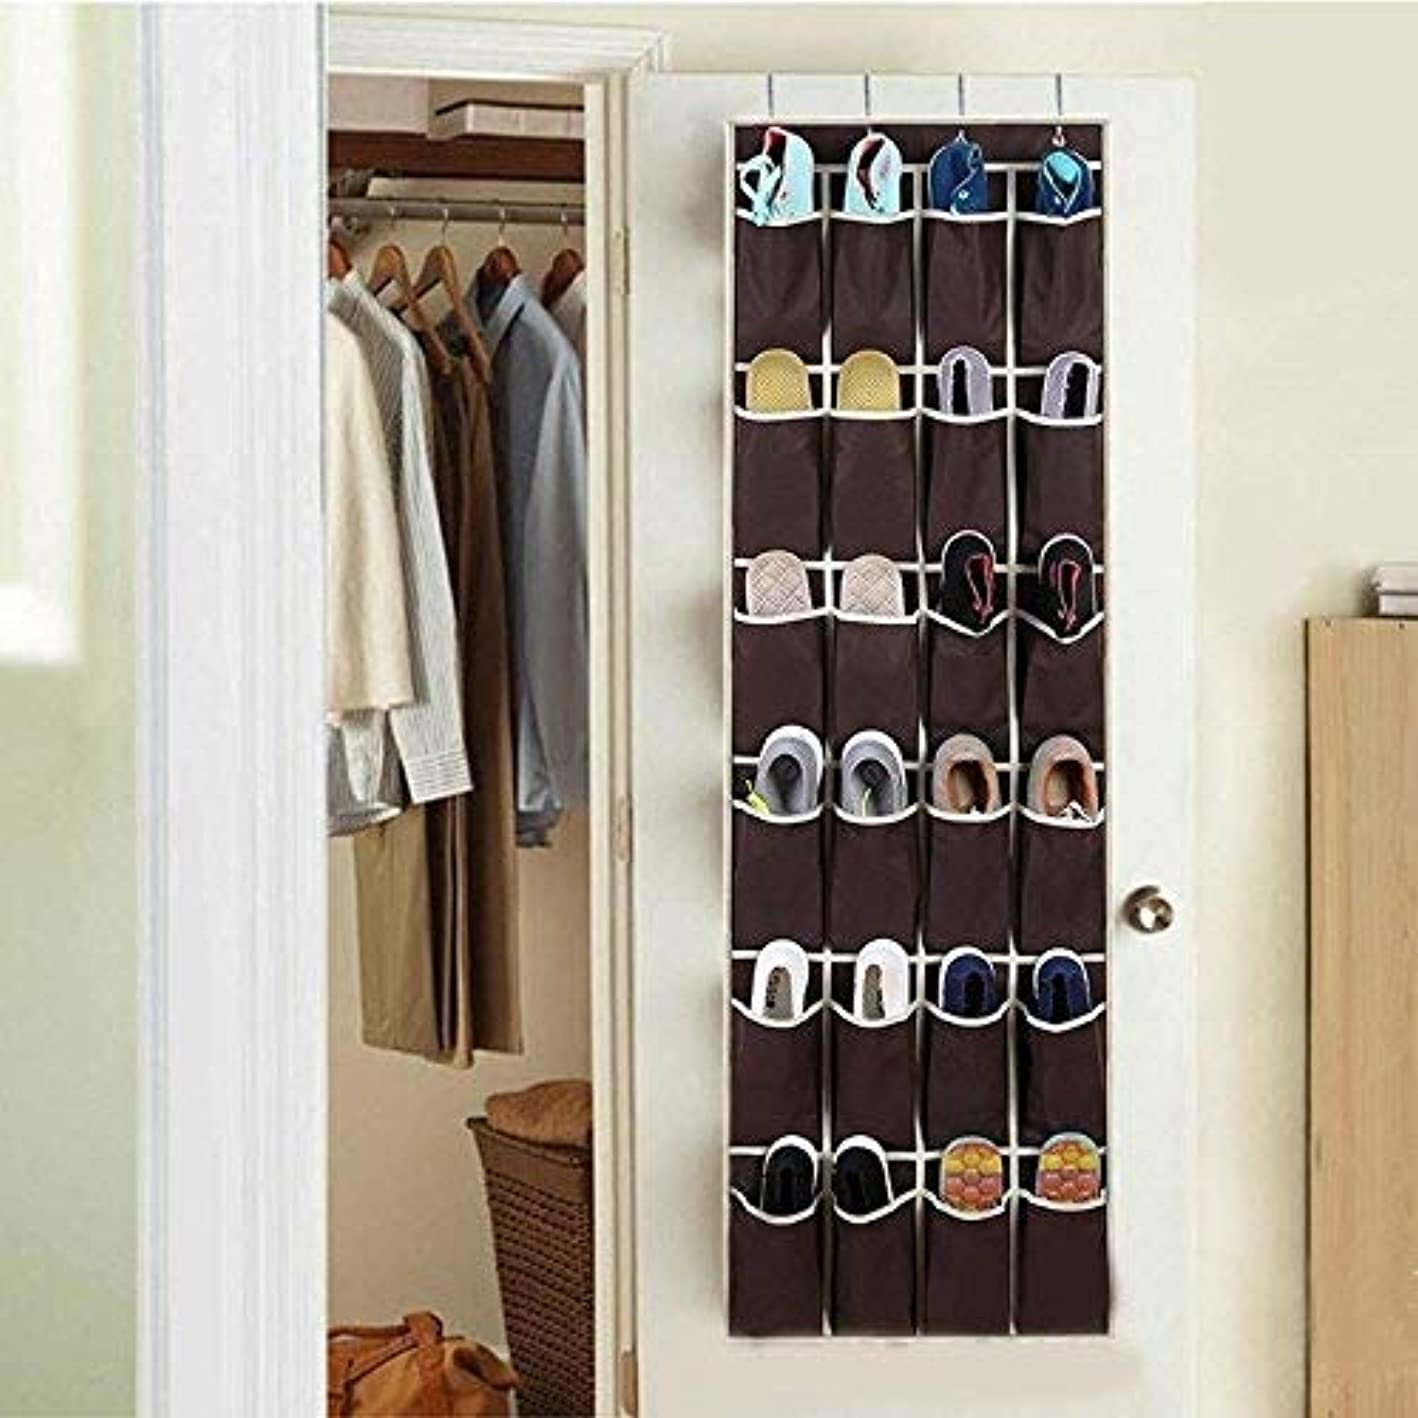 Hanging Storage Bag - 24 Pockets Non Woven Hanging Storage Bag Behind Over The Door Shoes Organizer Holder Sorter - Small Clothing Clothes For Mesh Container Wall Books Pink Bedside